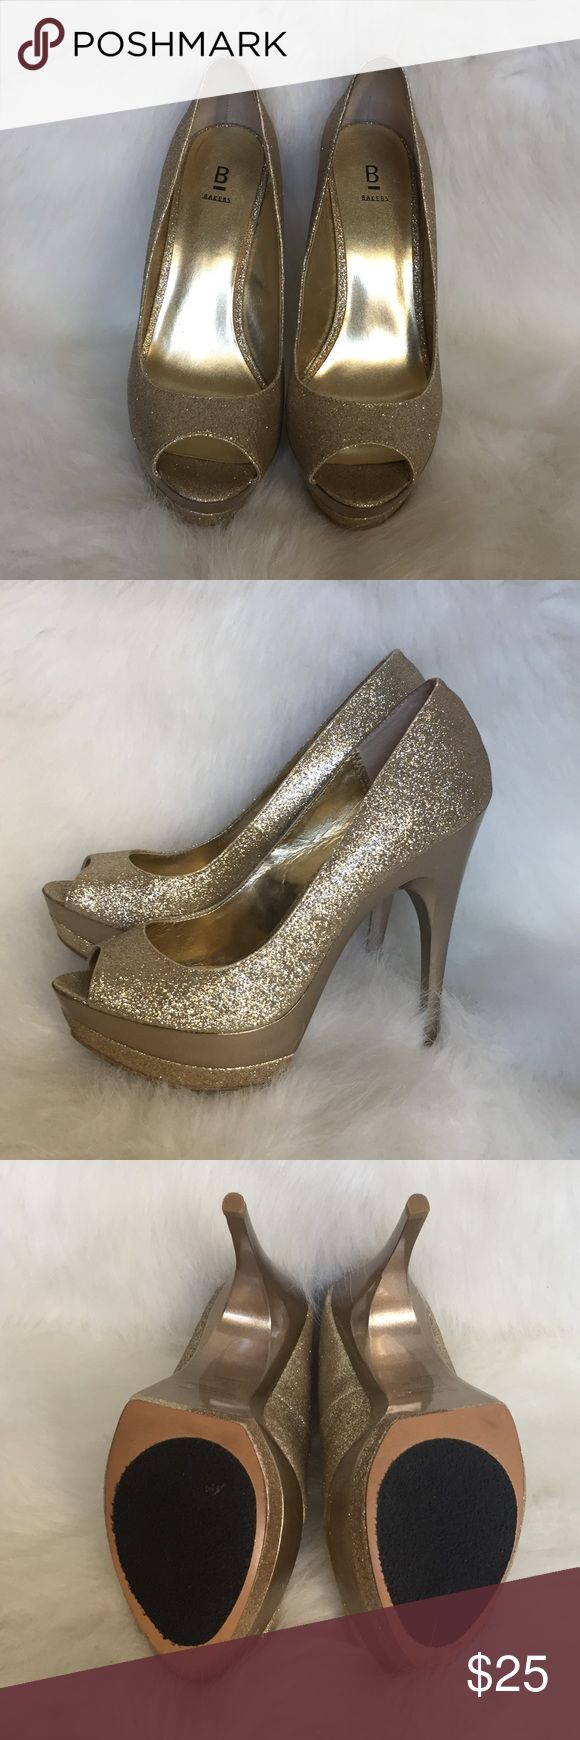 Bakers Gold Platform Heels Gold, platform heels. Like new condition. Non-skid bottom. Bakers Shoes Heels